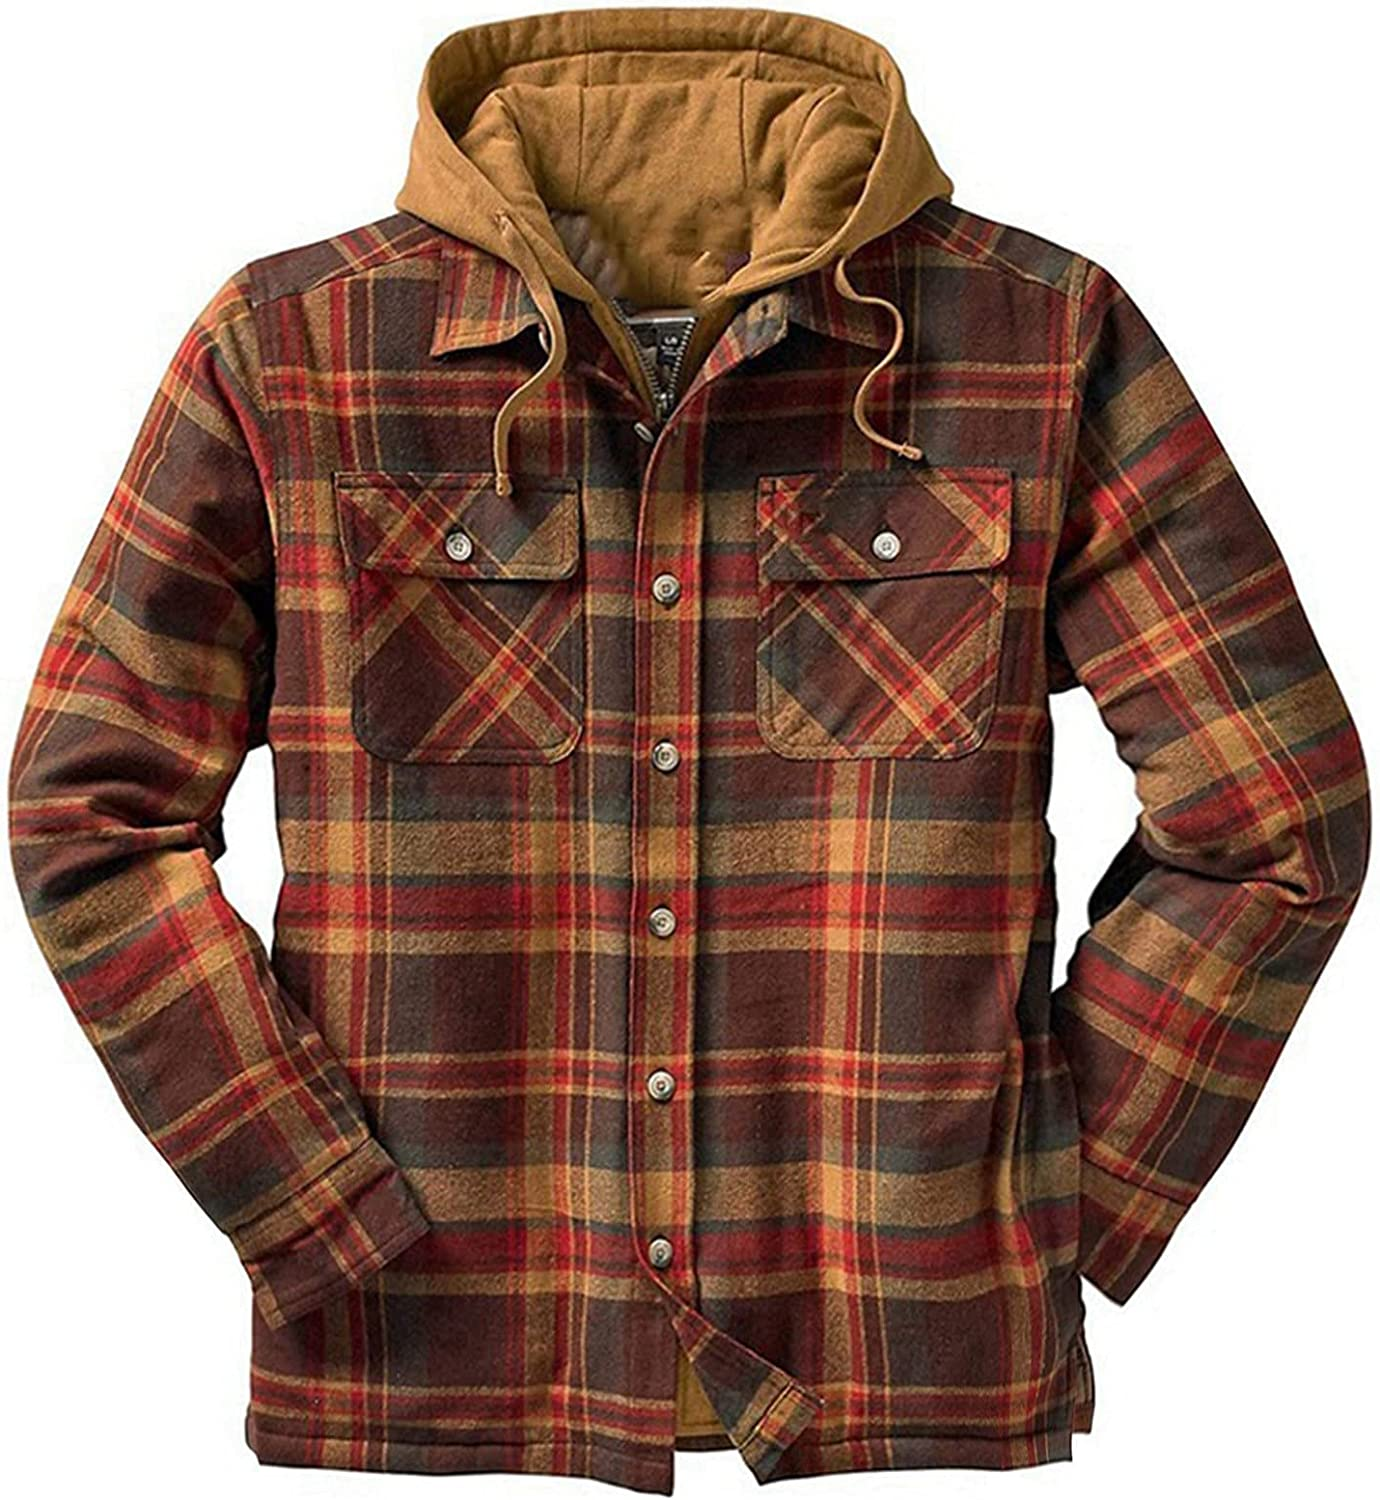 Mens Sherpa Fleece Casual Plaid Hooded Jackets Loose Lined Zip Up Lapel Coats Winter Warm Thick Hoodies Coats